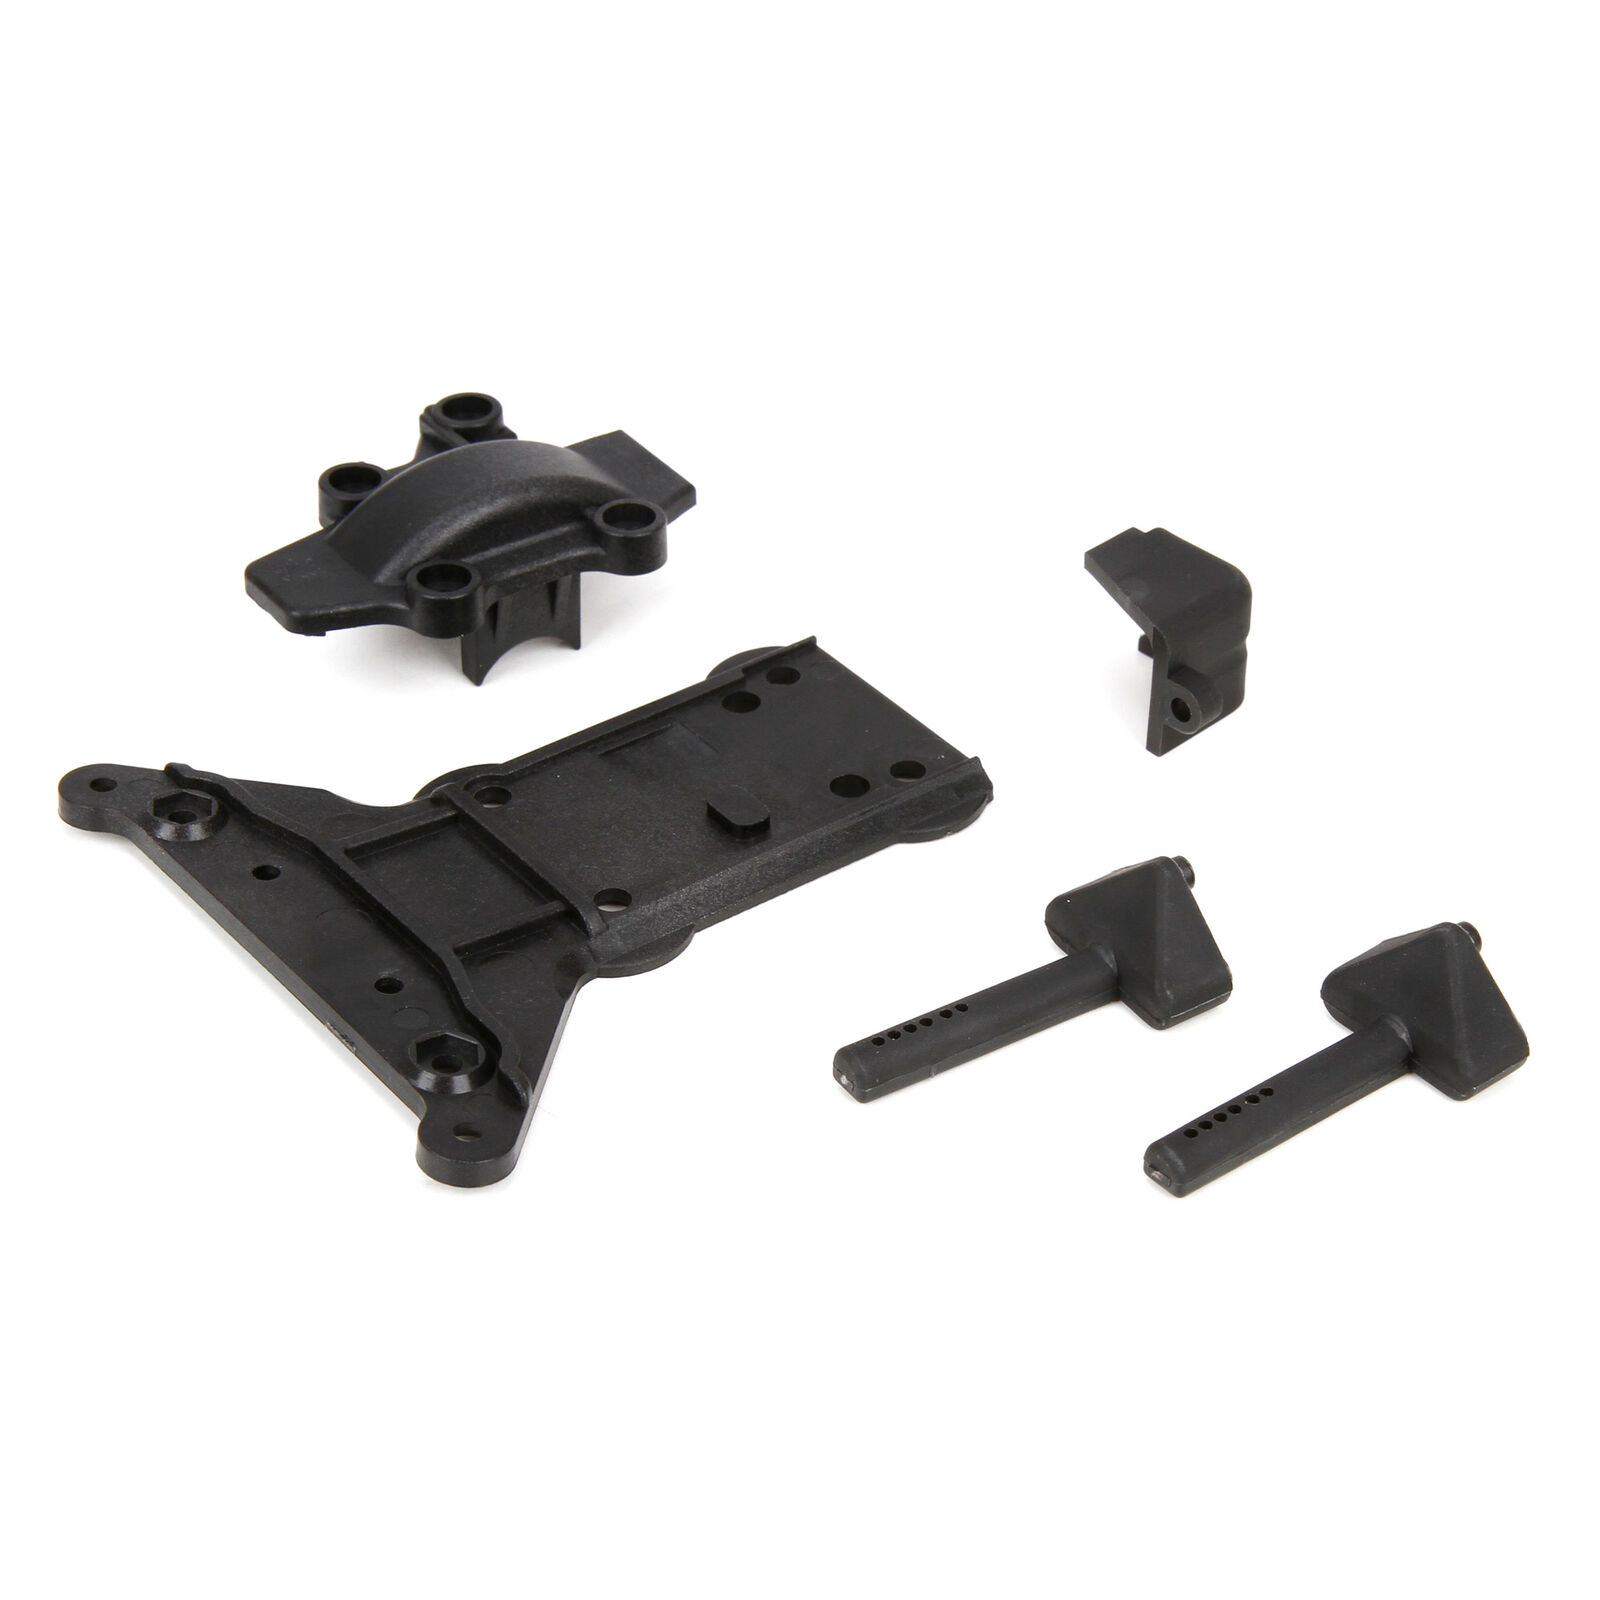 Gear Cover/Kick Plate/Battery Mounts: 1/10 4WD All